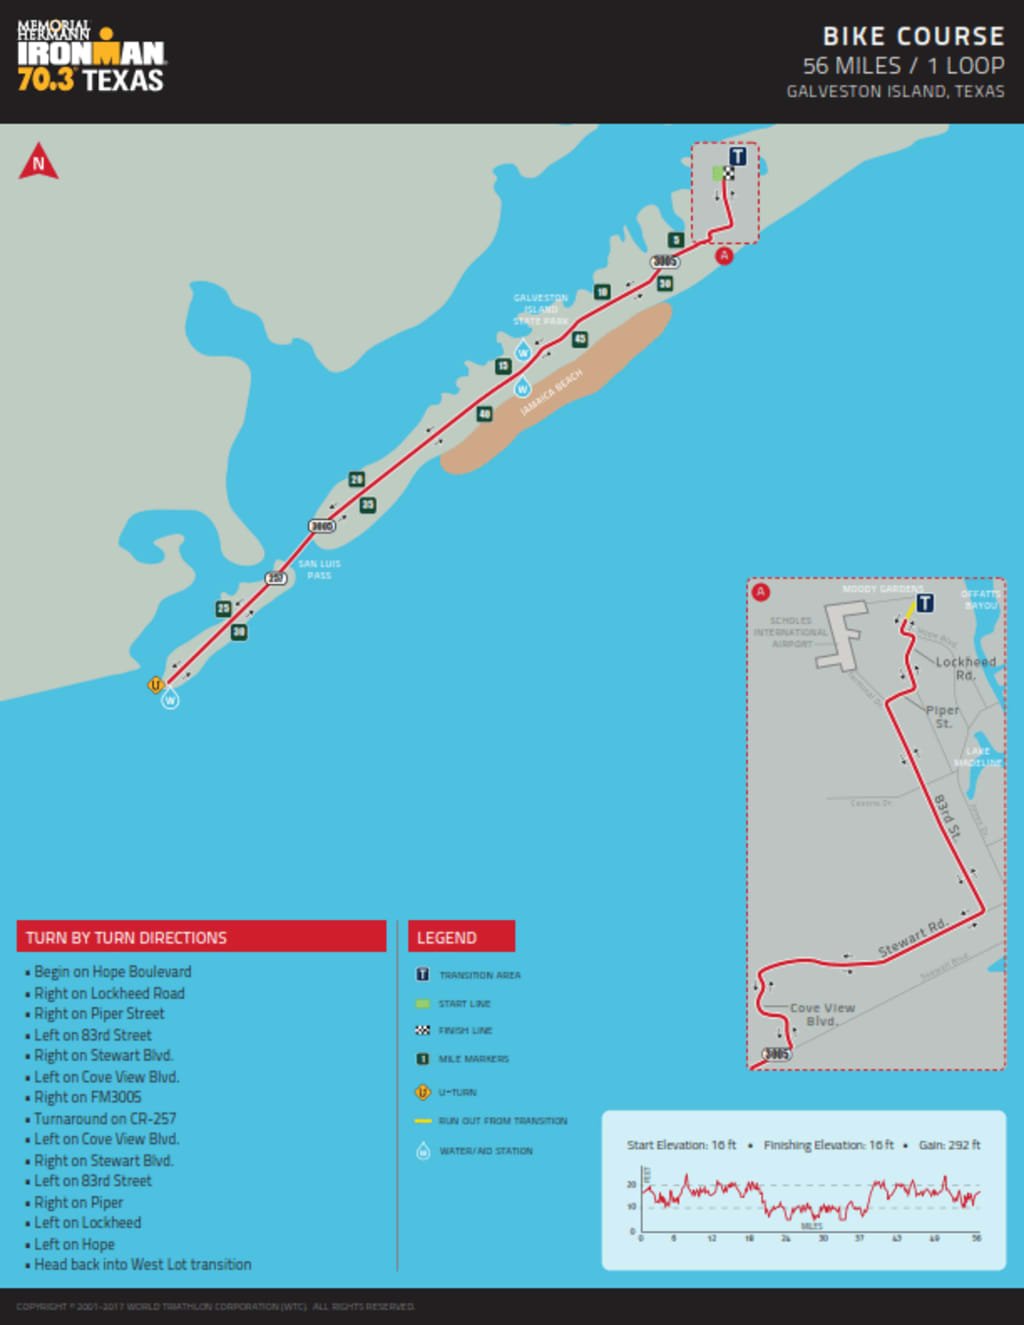 ironman-course-map-70-3-texas-bike-2017-web-1-1_001.png